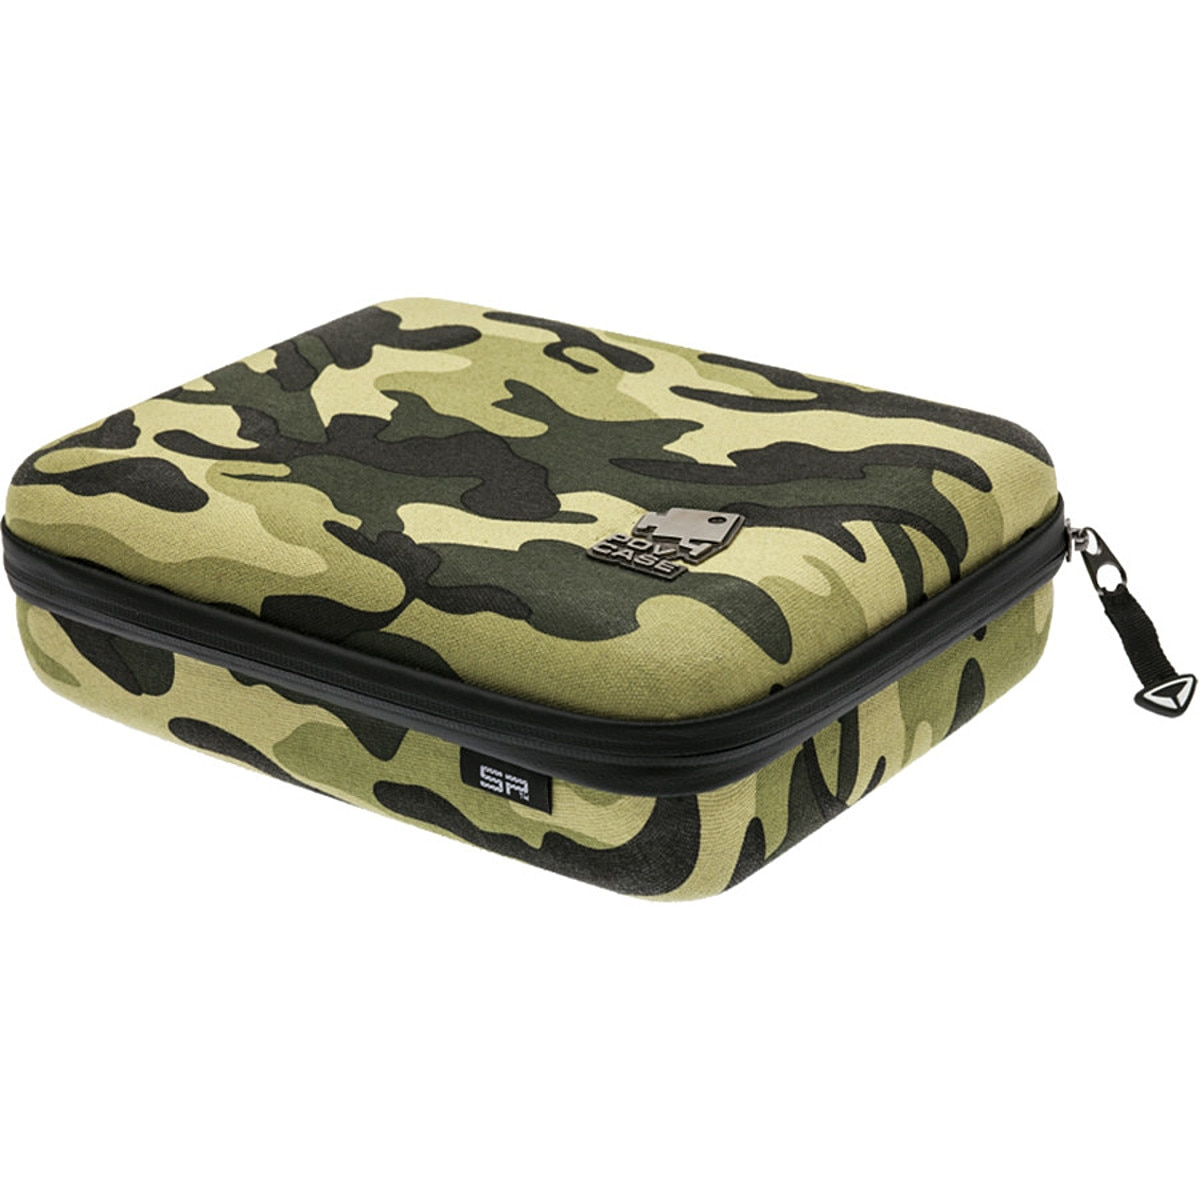 Take Offer SP Gadgets P.O.V. Case Small Camo, One Size Before Too Late